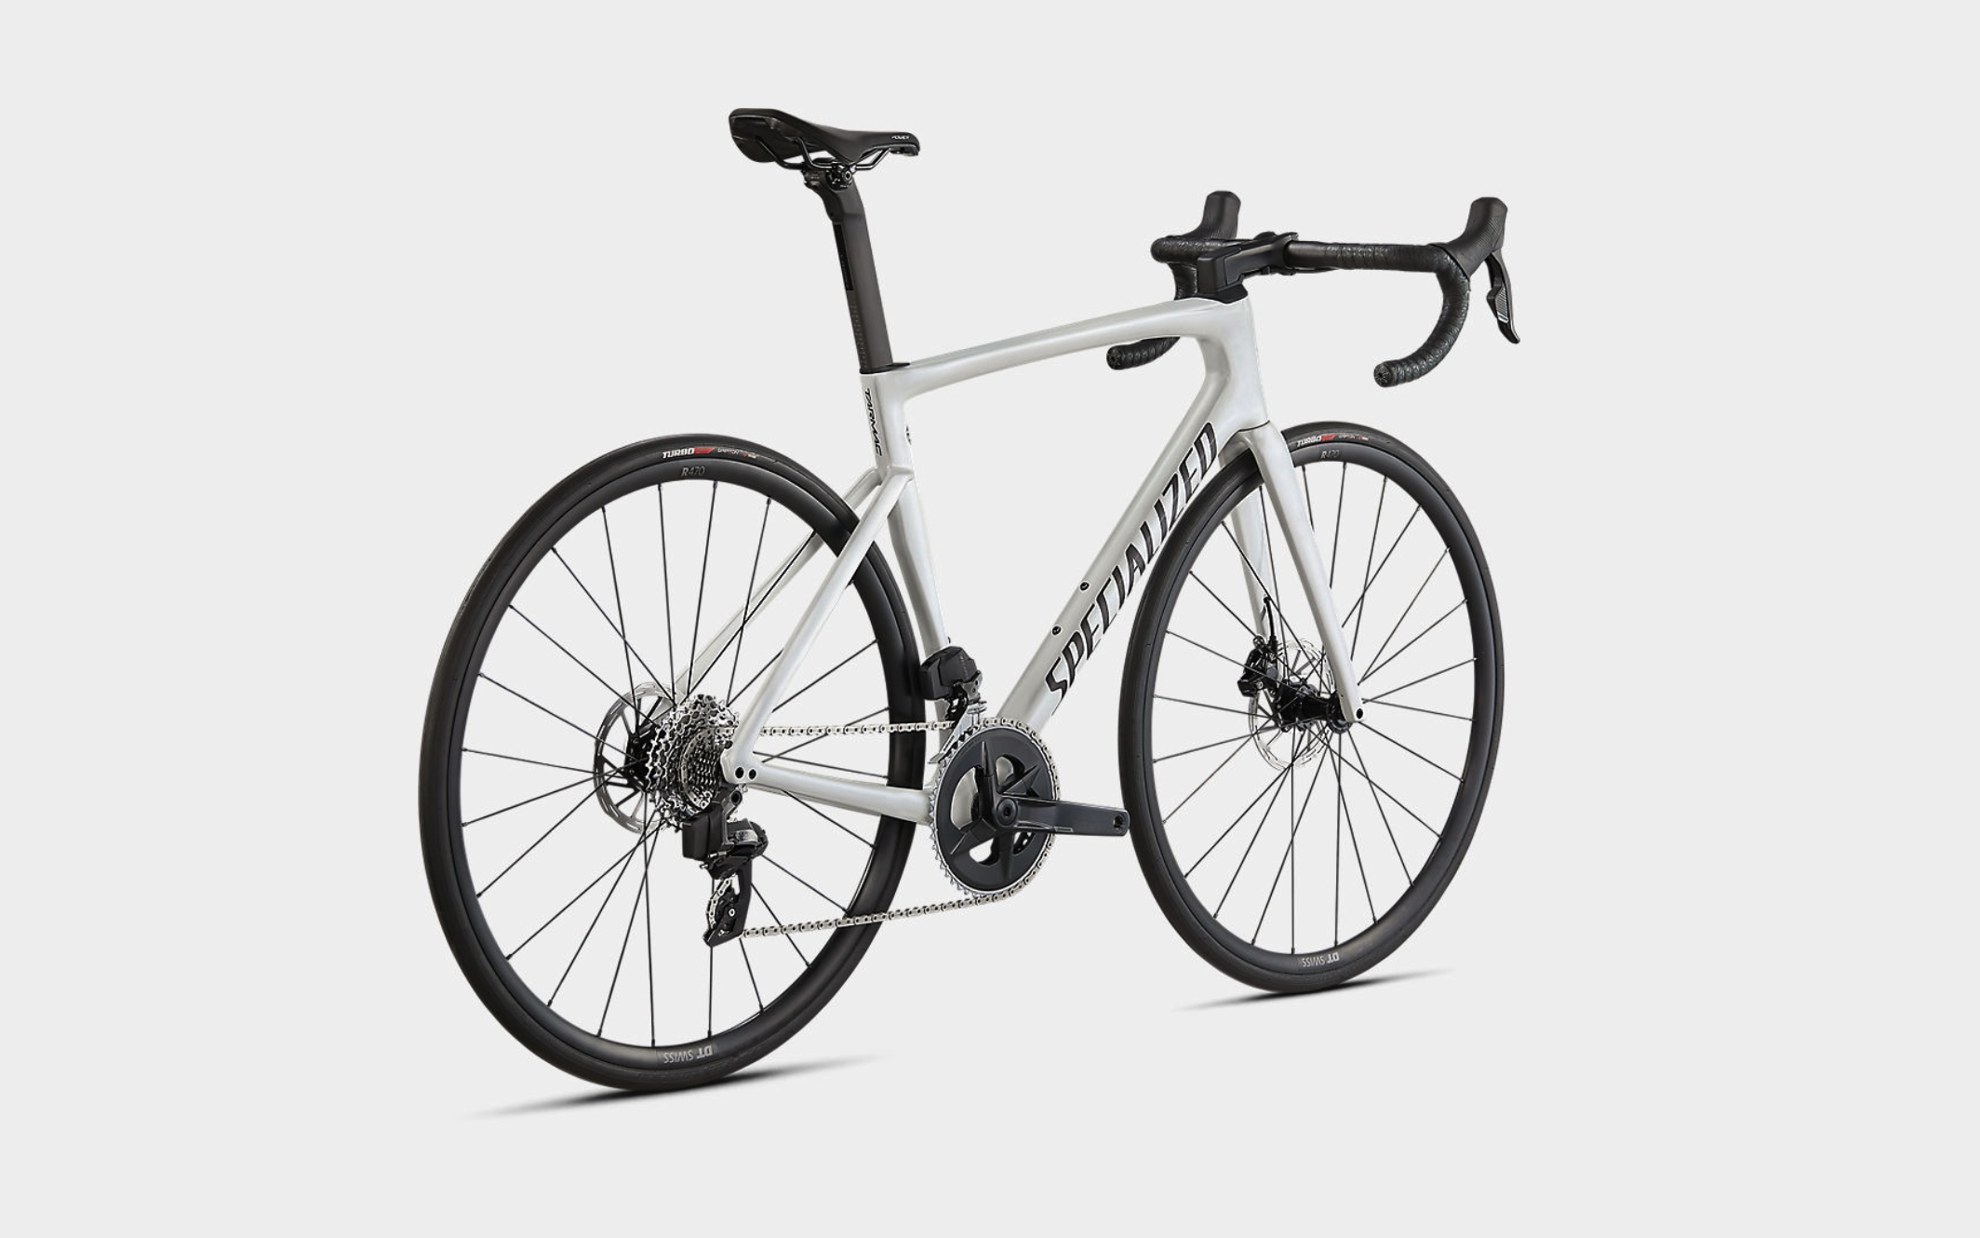 Picture of SPECIALIZED TARMAC SL7 COMP - RIVAL eTAP AXS 2022 Bianco/argento